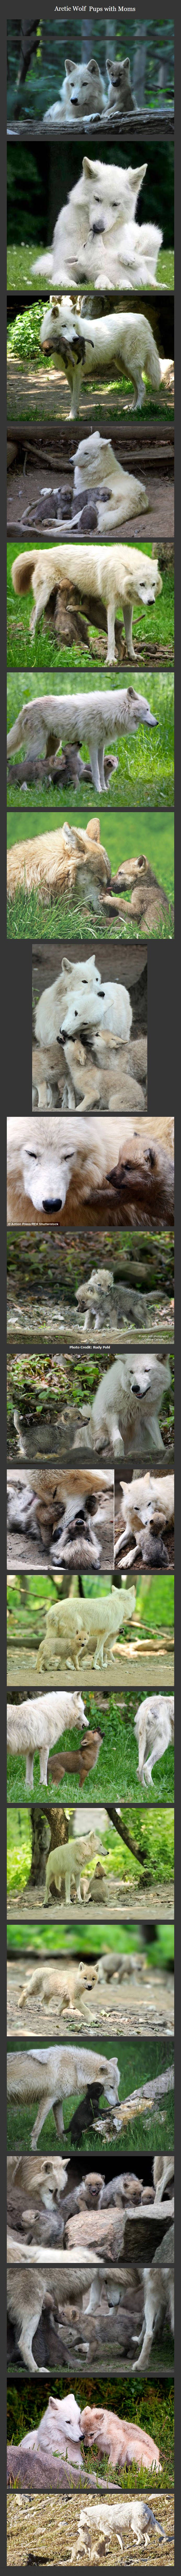 Arctic wolves and their pups